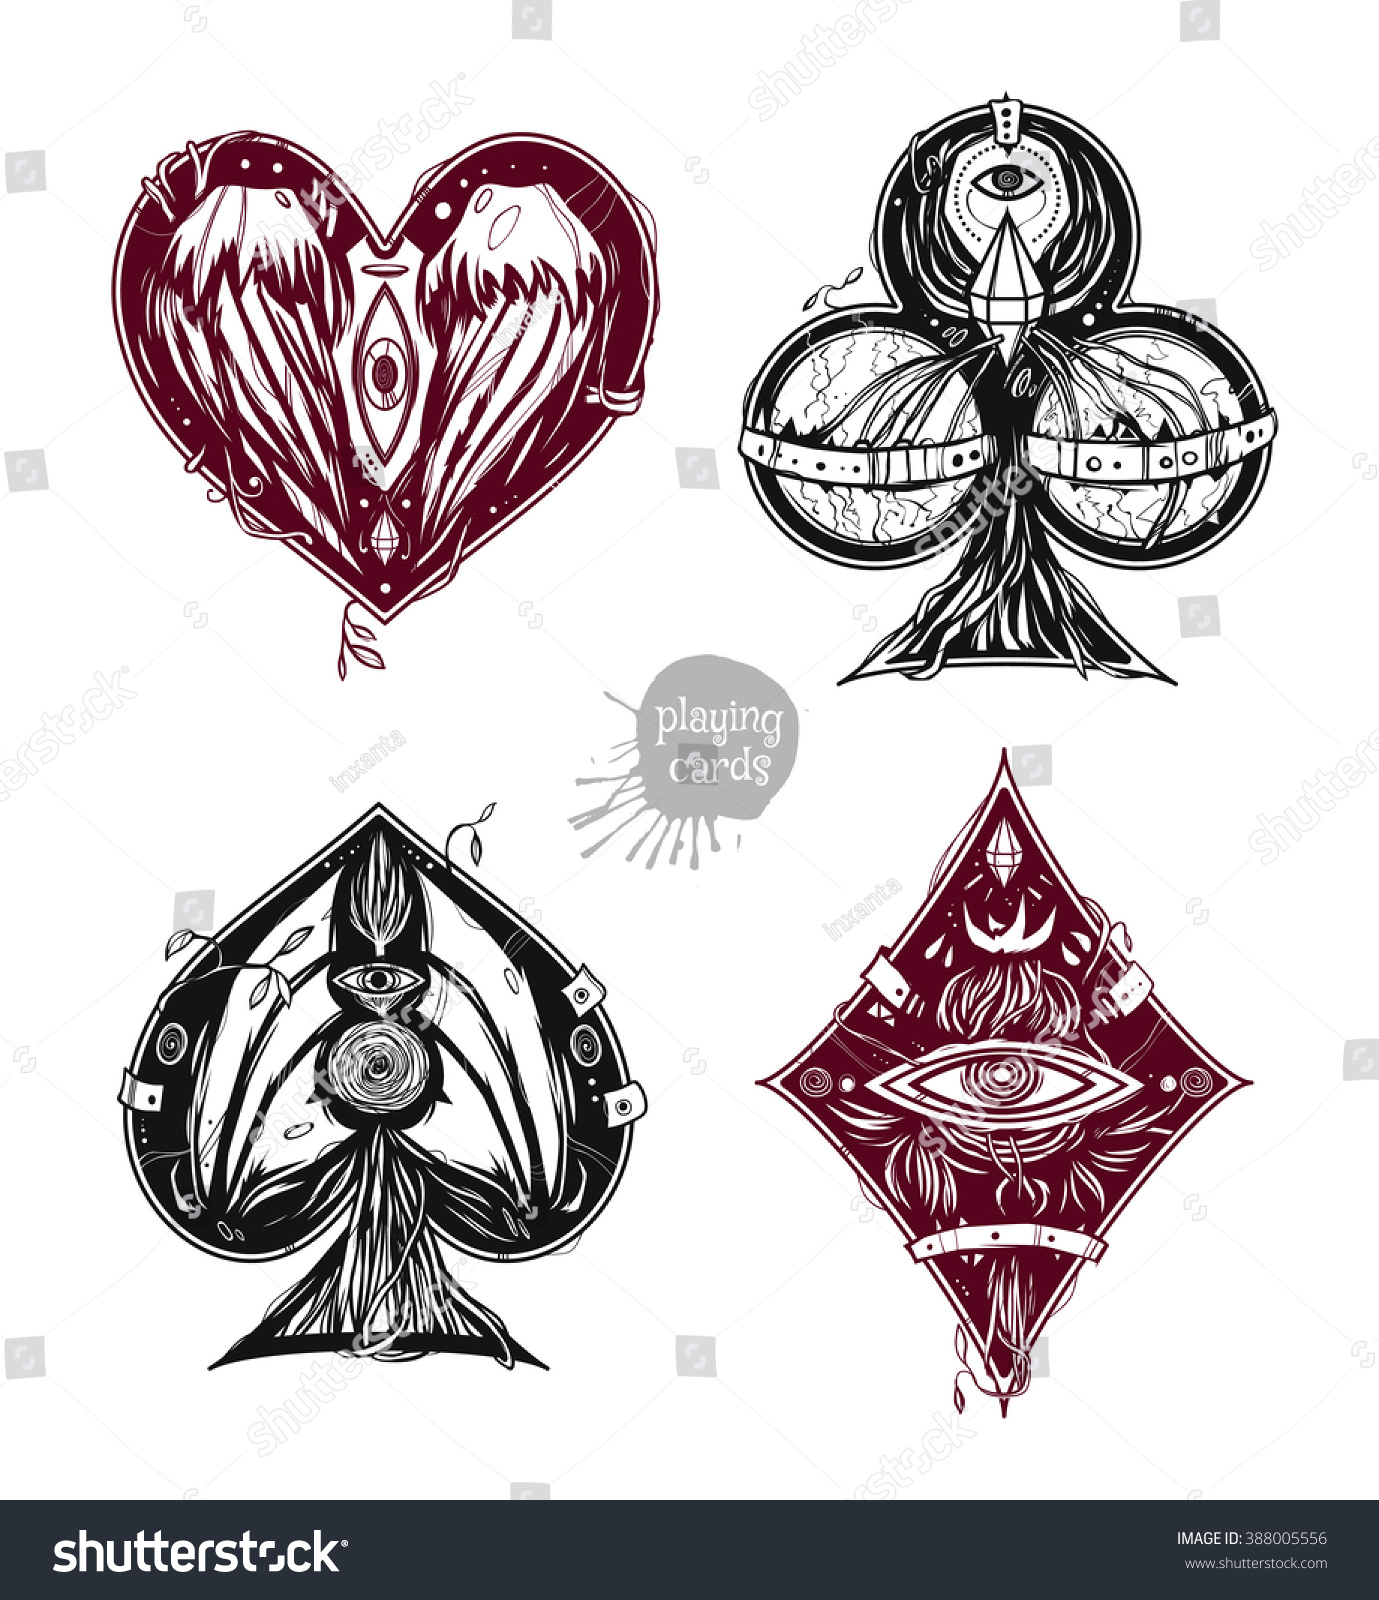 Design Card Suits Clubs Diamonds Hearts Stock Vector Ideas And Designs